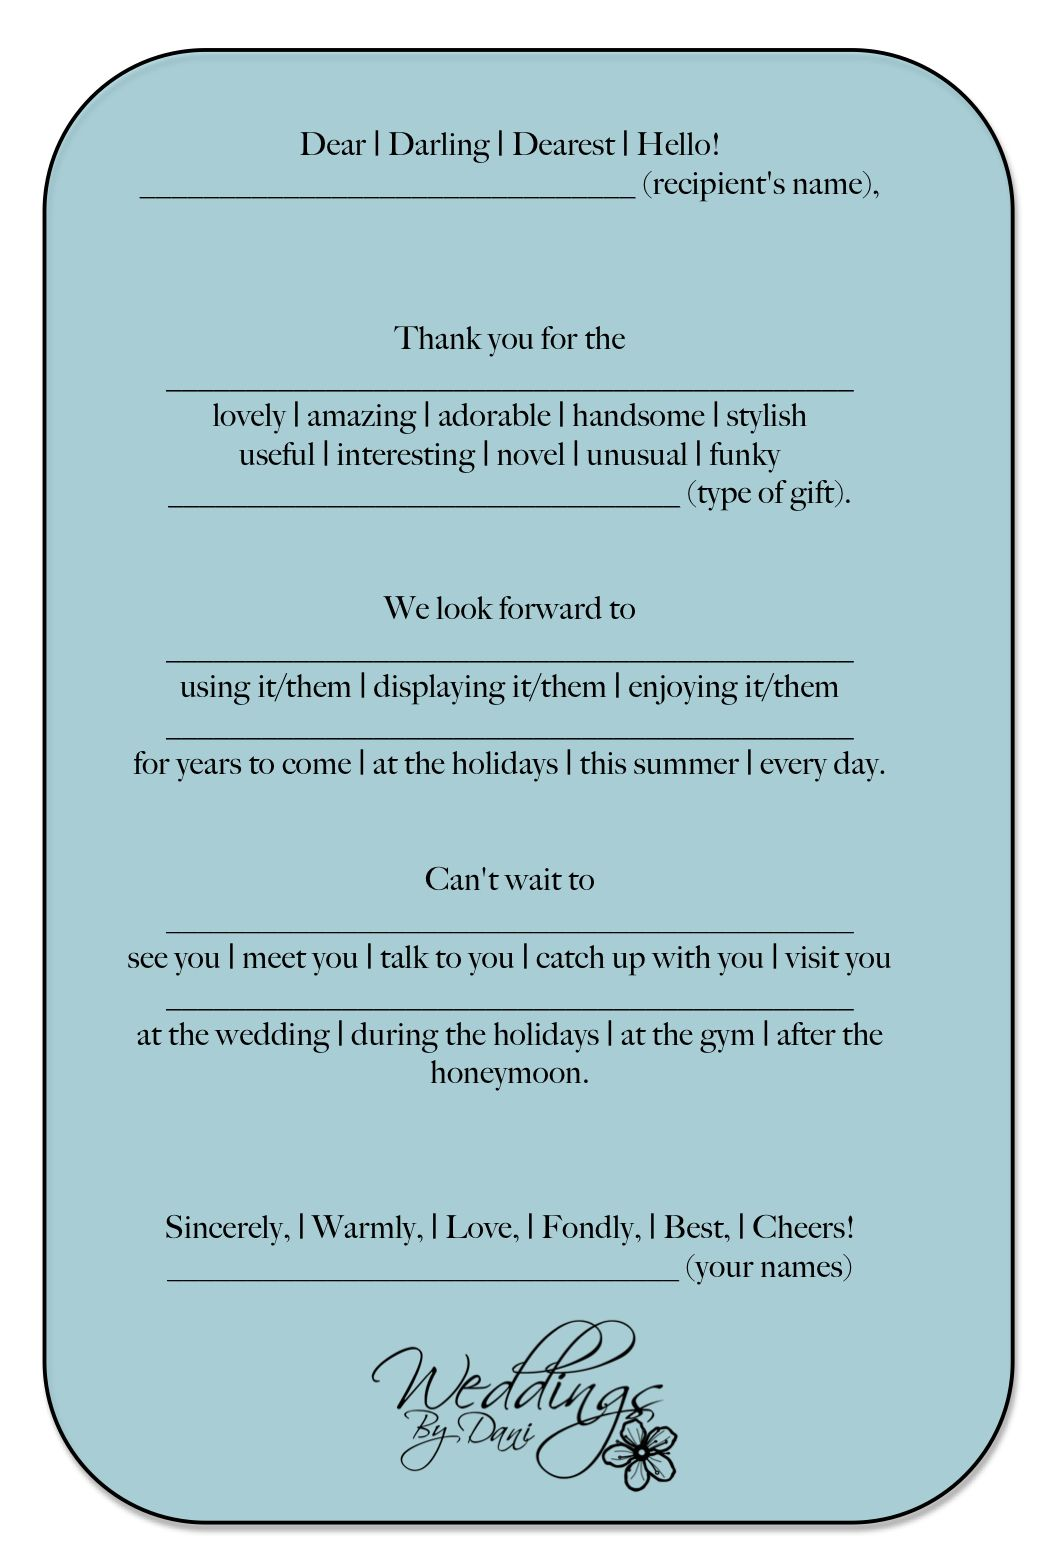 Wedding Thank You Cards Thank You Card Wording Wedding Thank You Cards Wording Wedding Thank You Cards